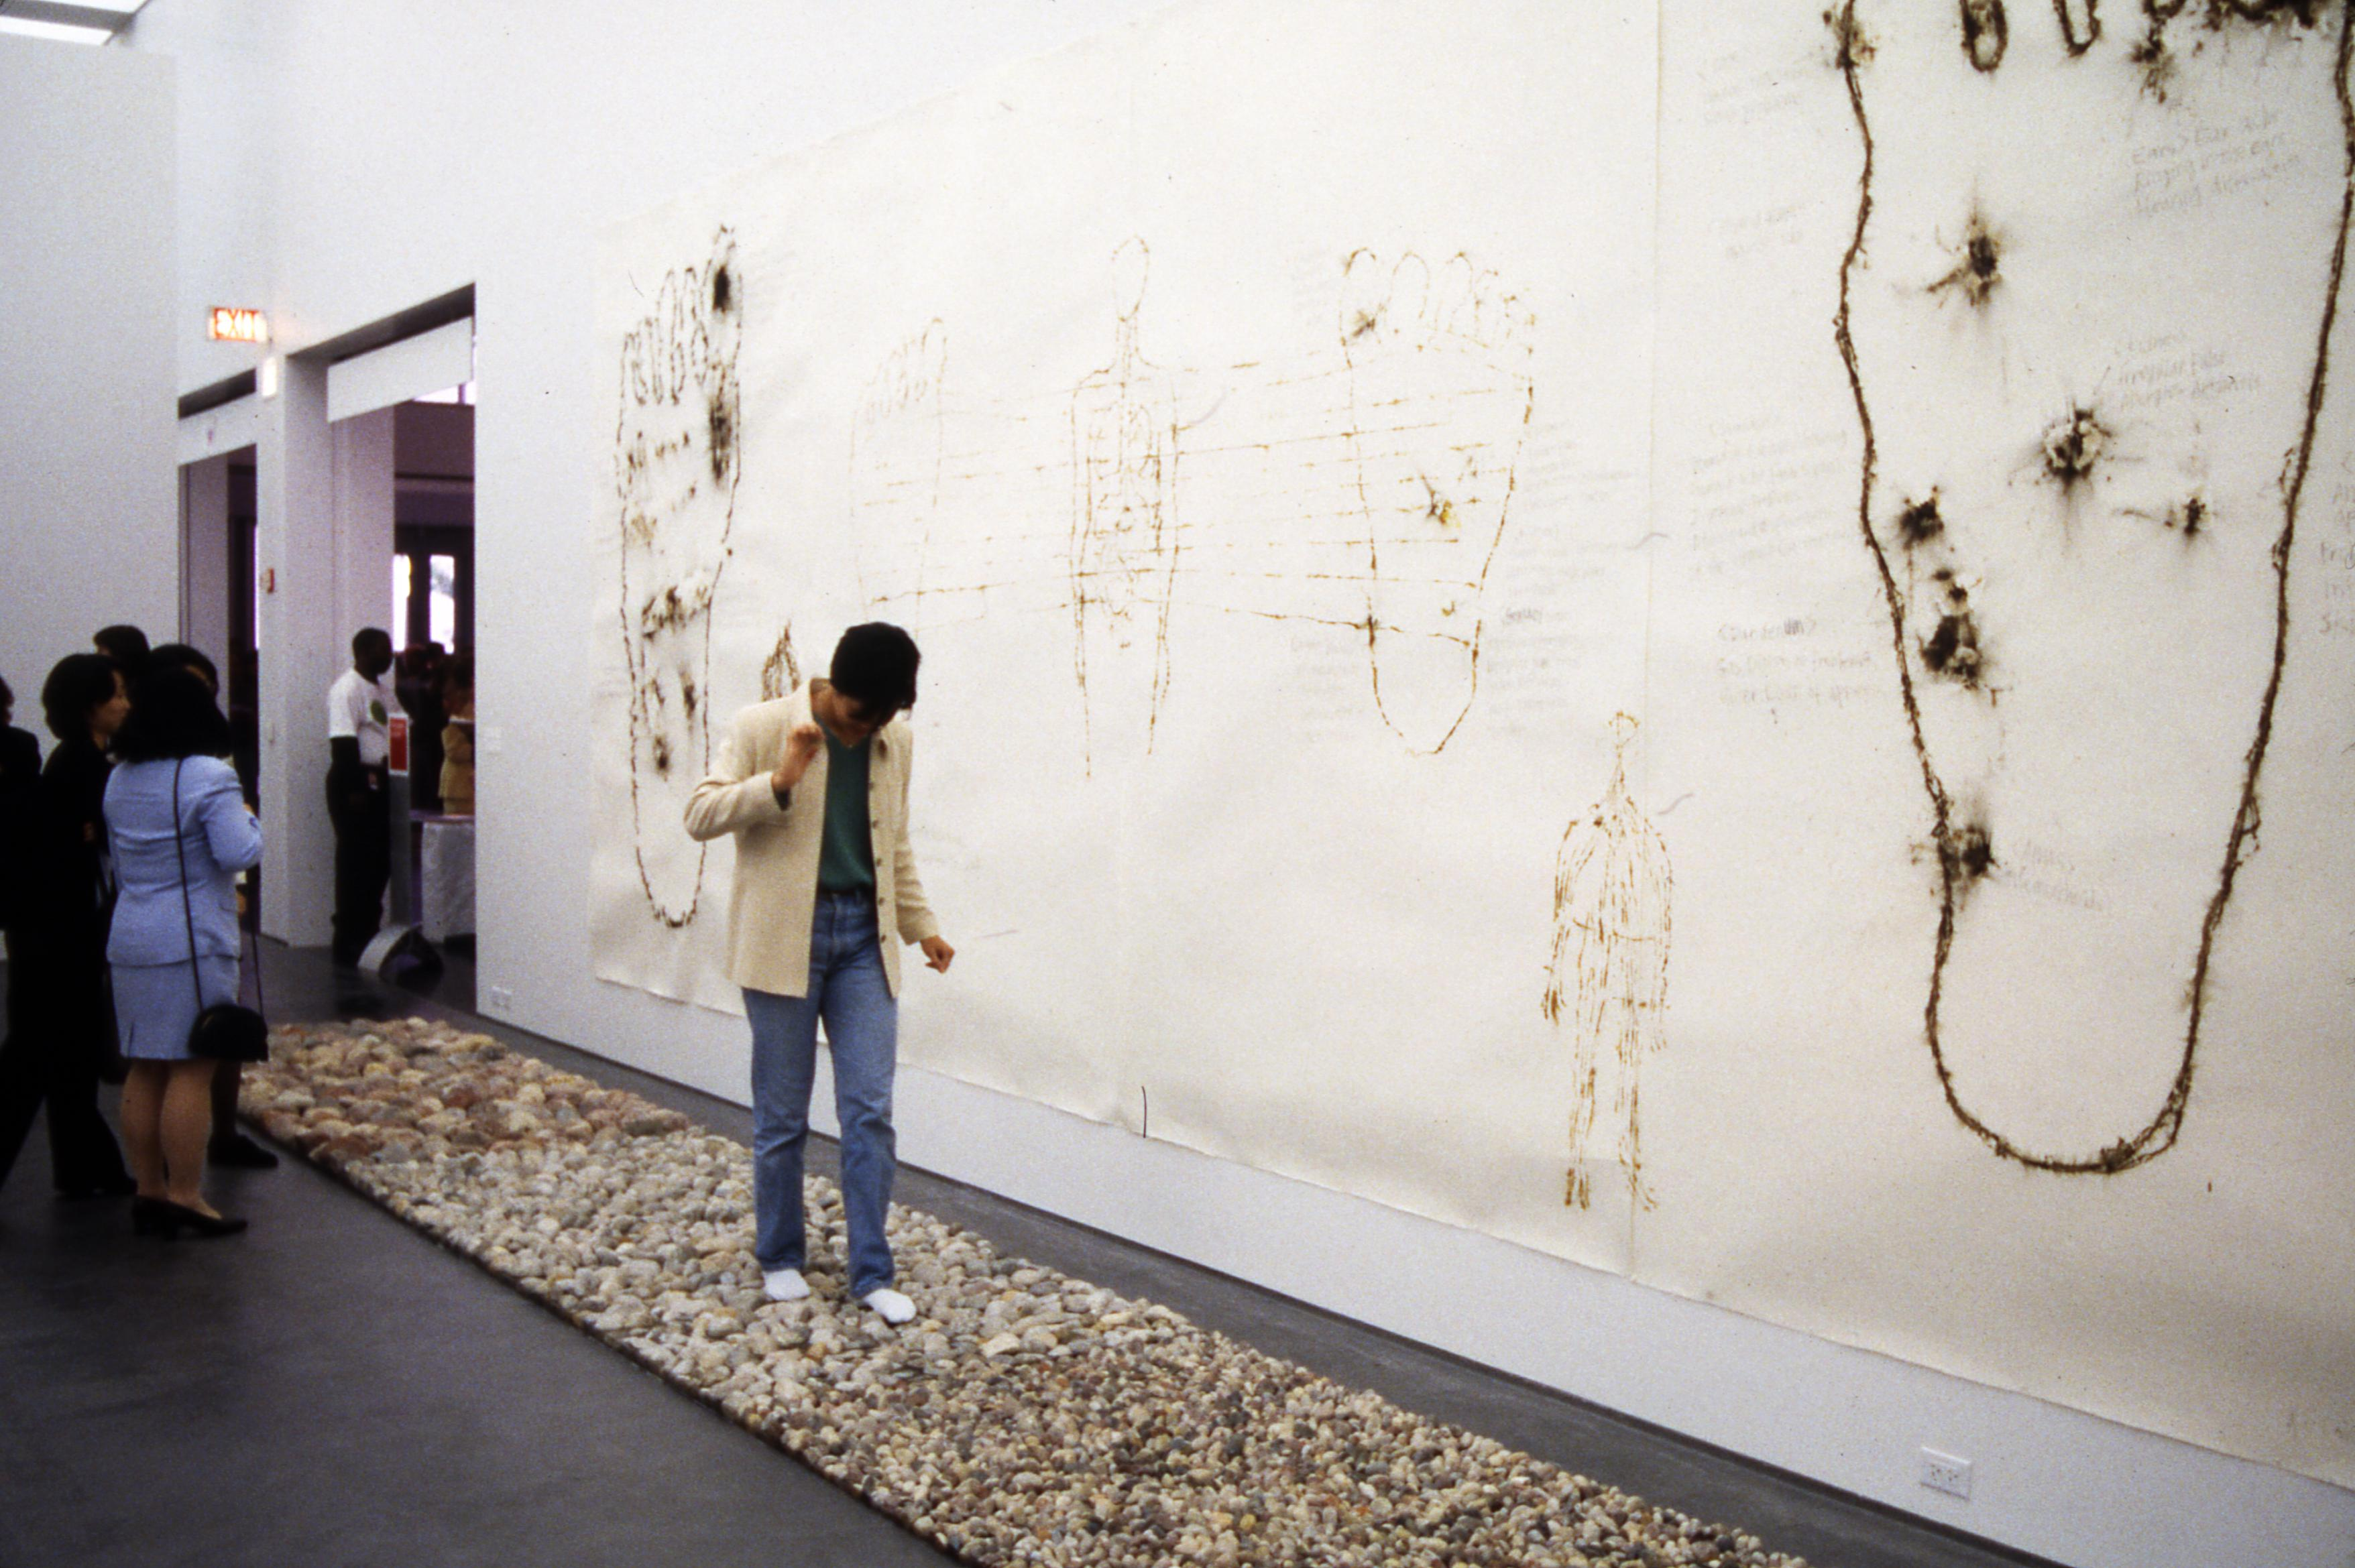 A man walks tentatively across a rectangular stone path installed in a gallery. On the wall beside him are images of feet which have been punctured.